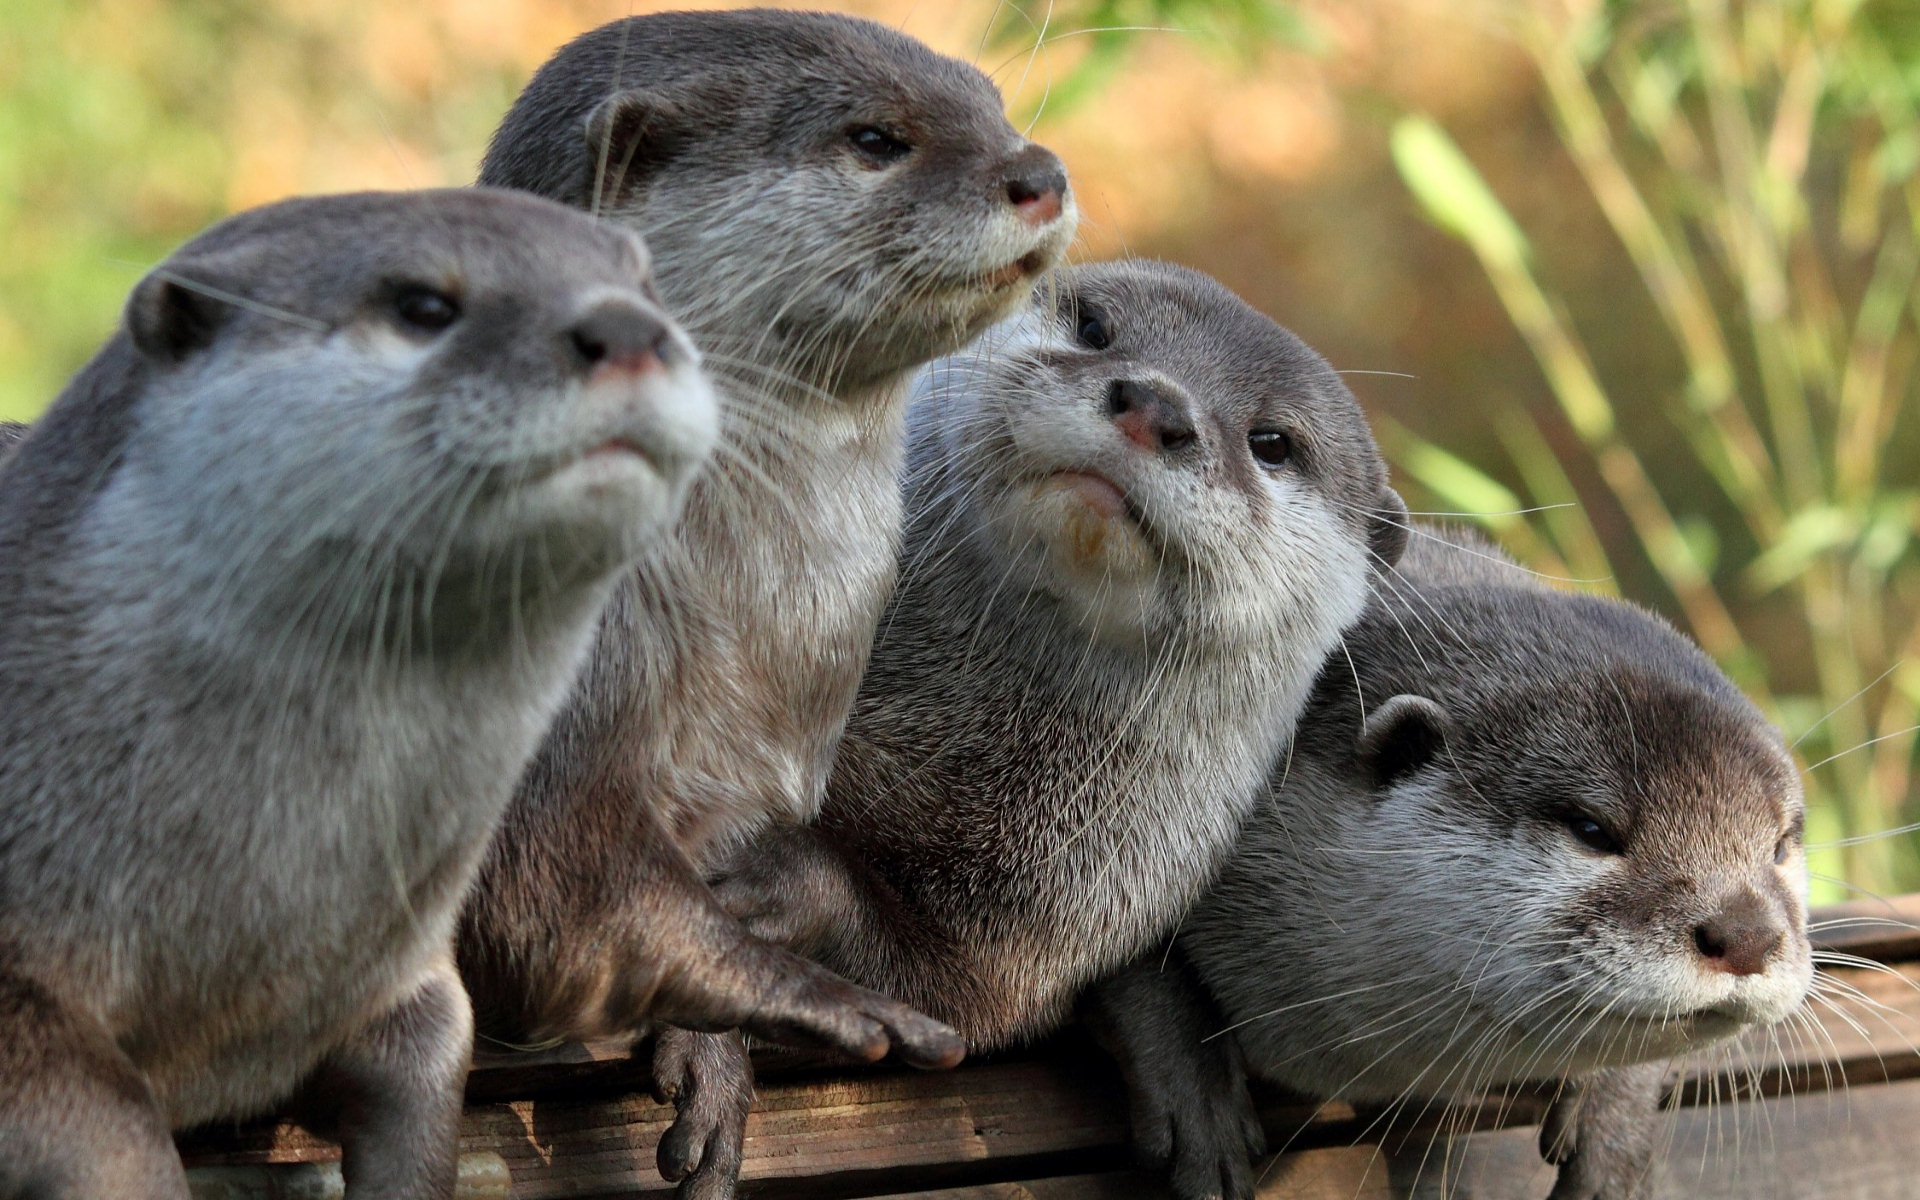 Cute Otter Wallpaper · Otter Wallpaper ...